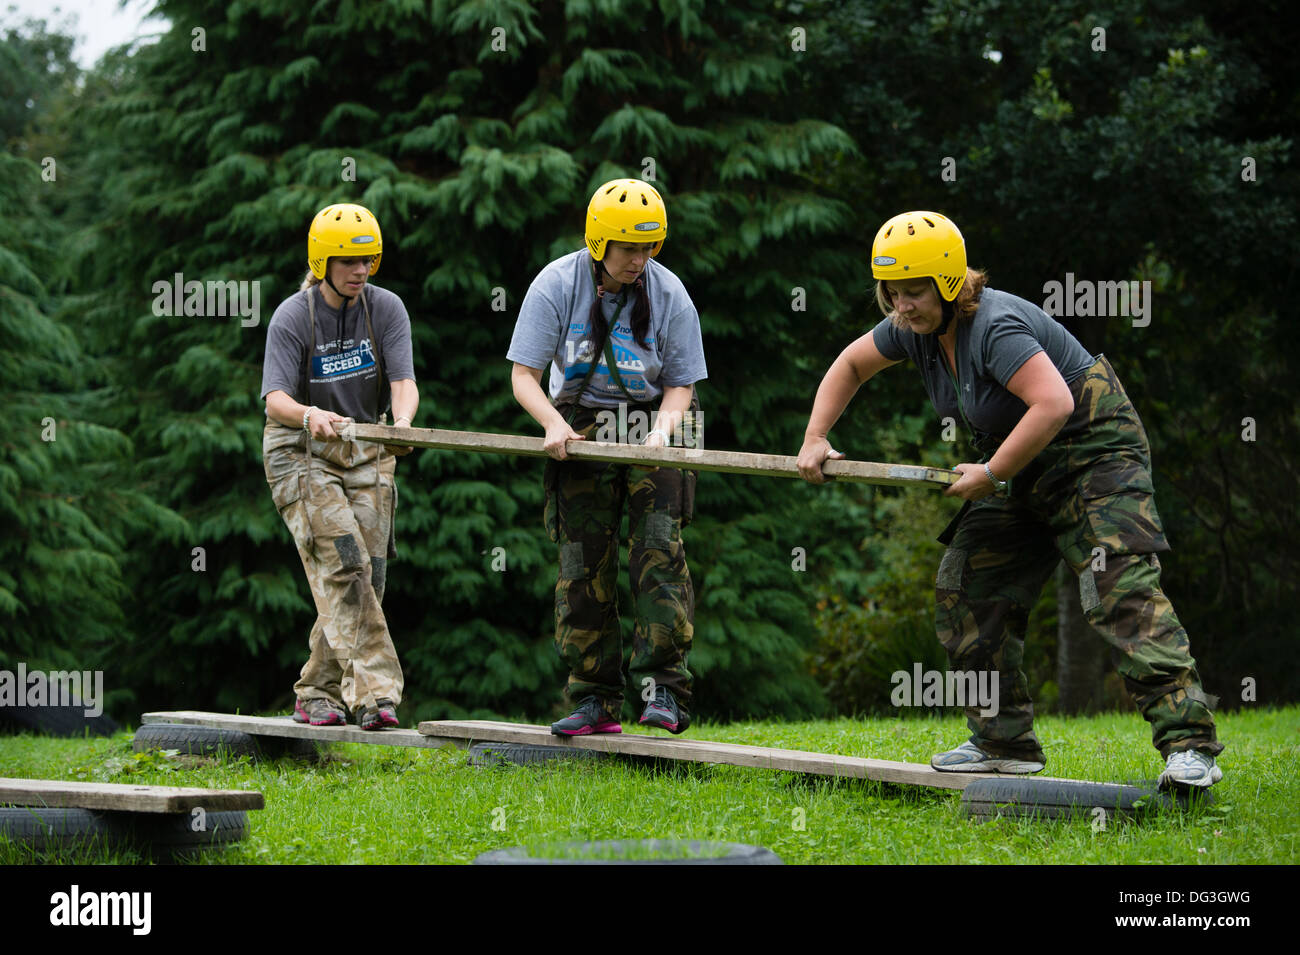 A group of adult women on a team building problem solving outdoor pursuits workshop event UK - Stock Image